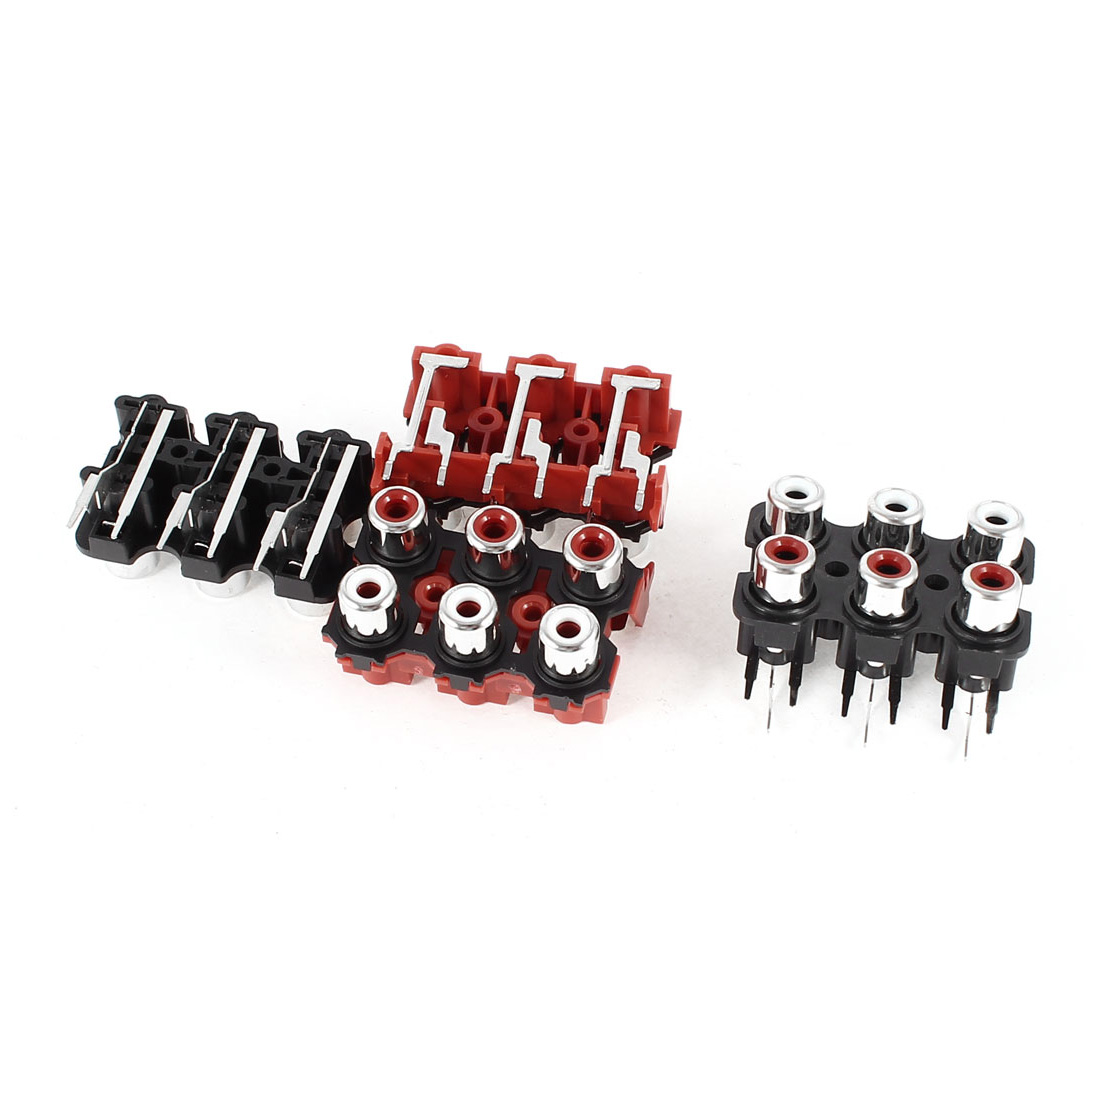 4pcs PCB Mount AV Concentric Outlet 6 RCA Female Socket Board Red